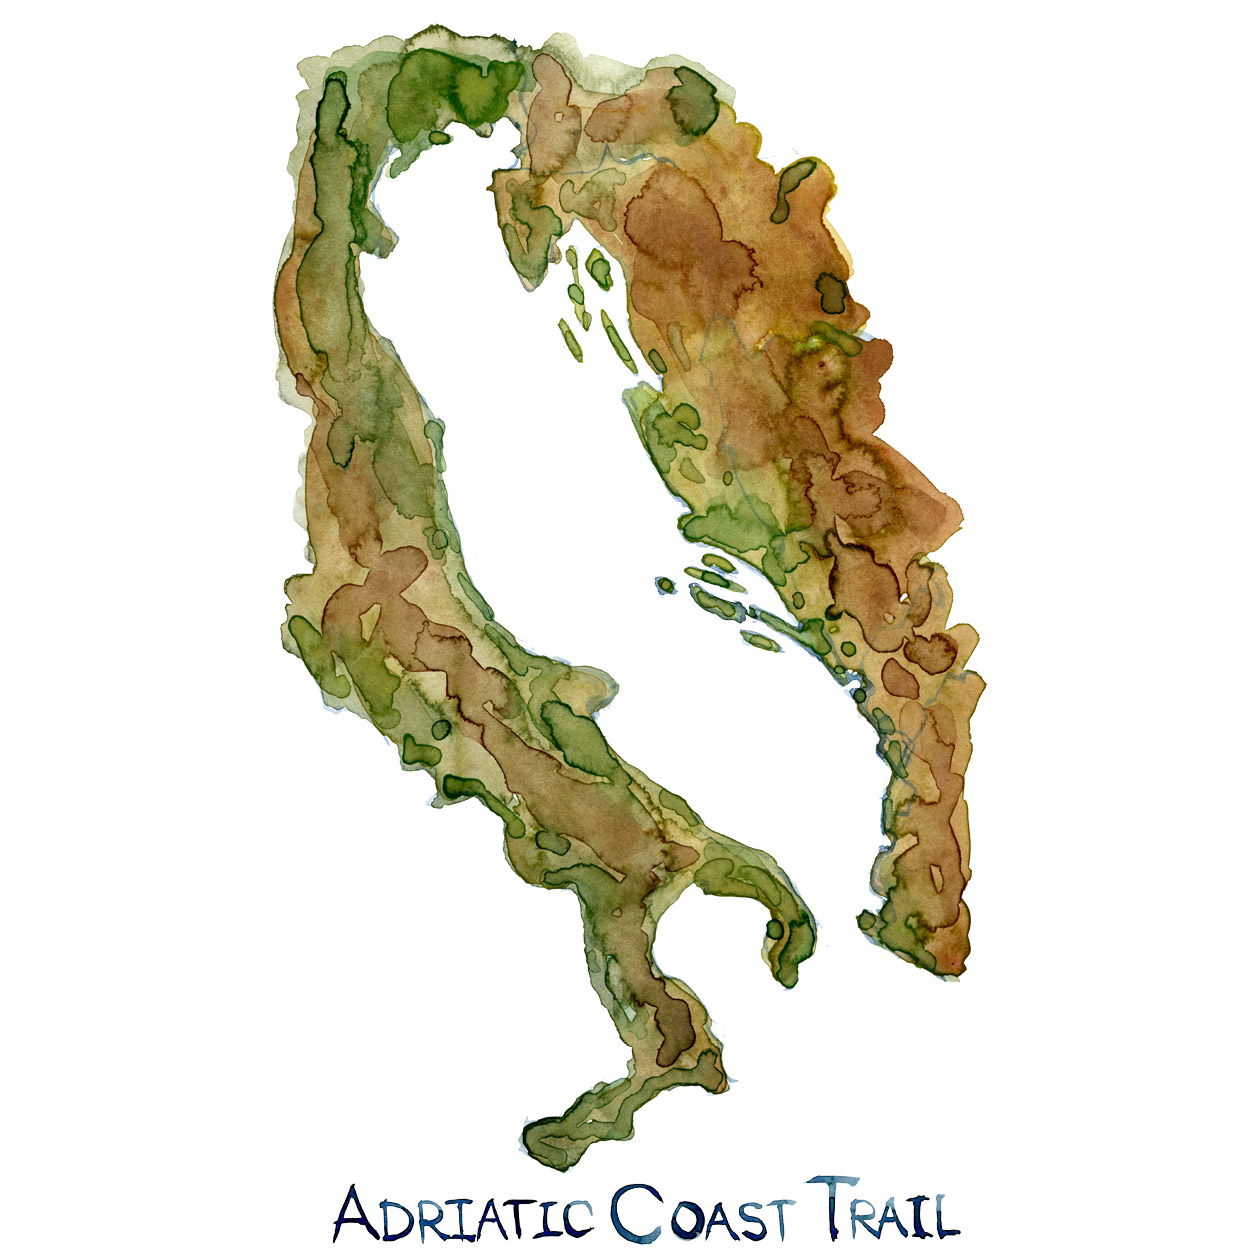 Watercolor of the Coastline around the Adriatic Sea. with the Adriatic Coast Trail Written on it